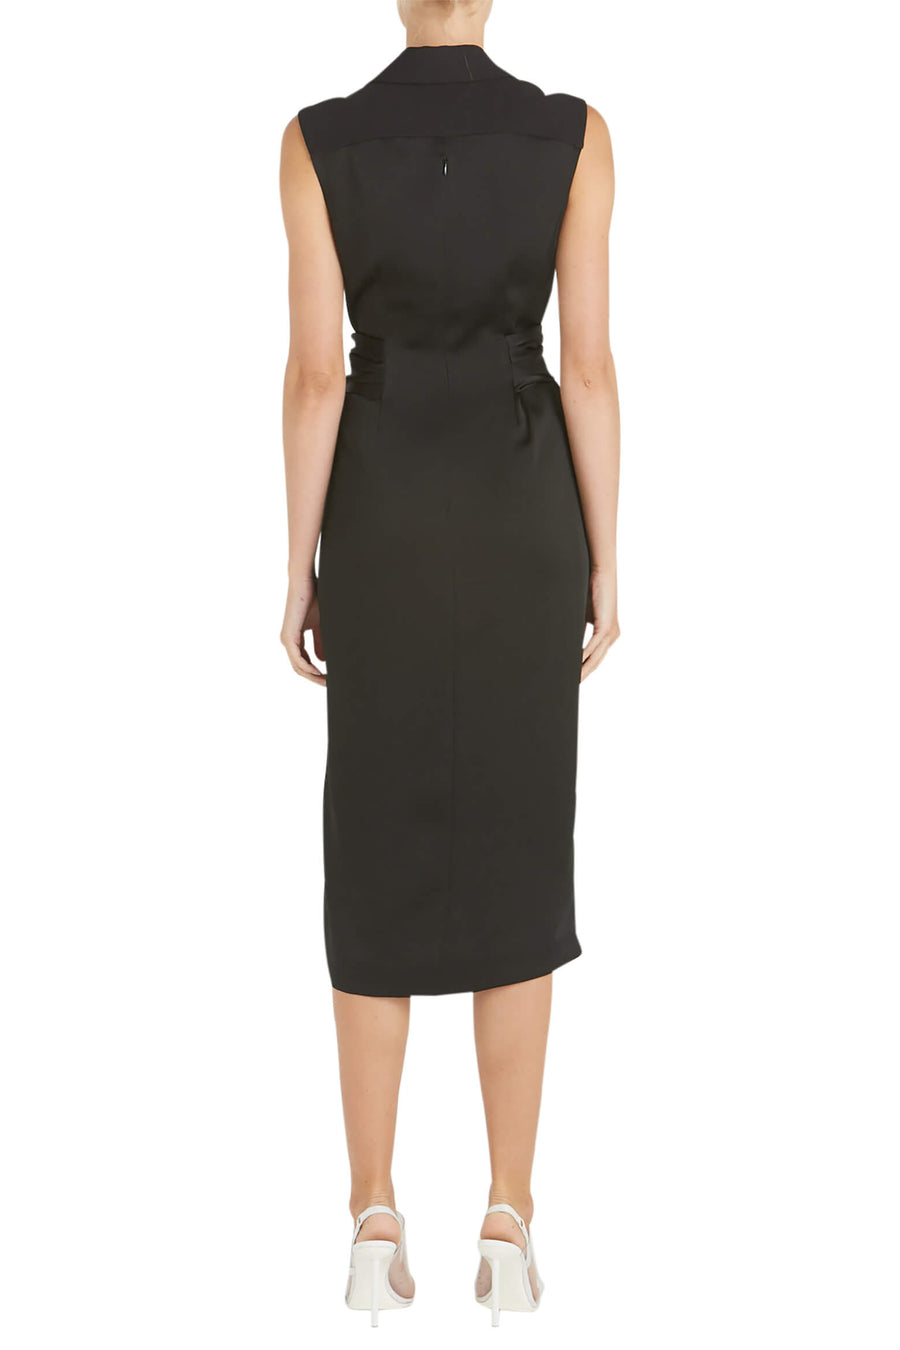 Jonathan Simkhai Luxe Satin Twist Dress from The New Trend